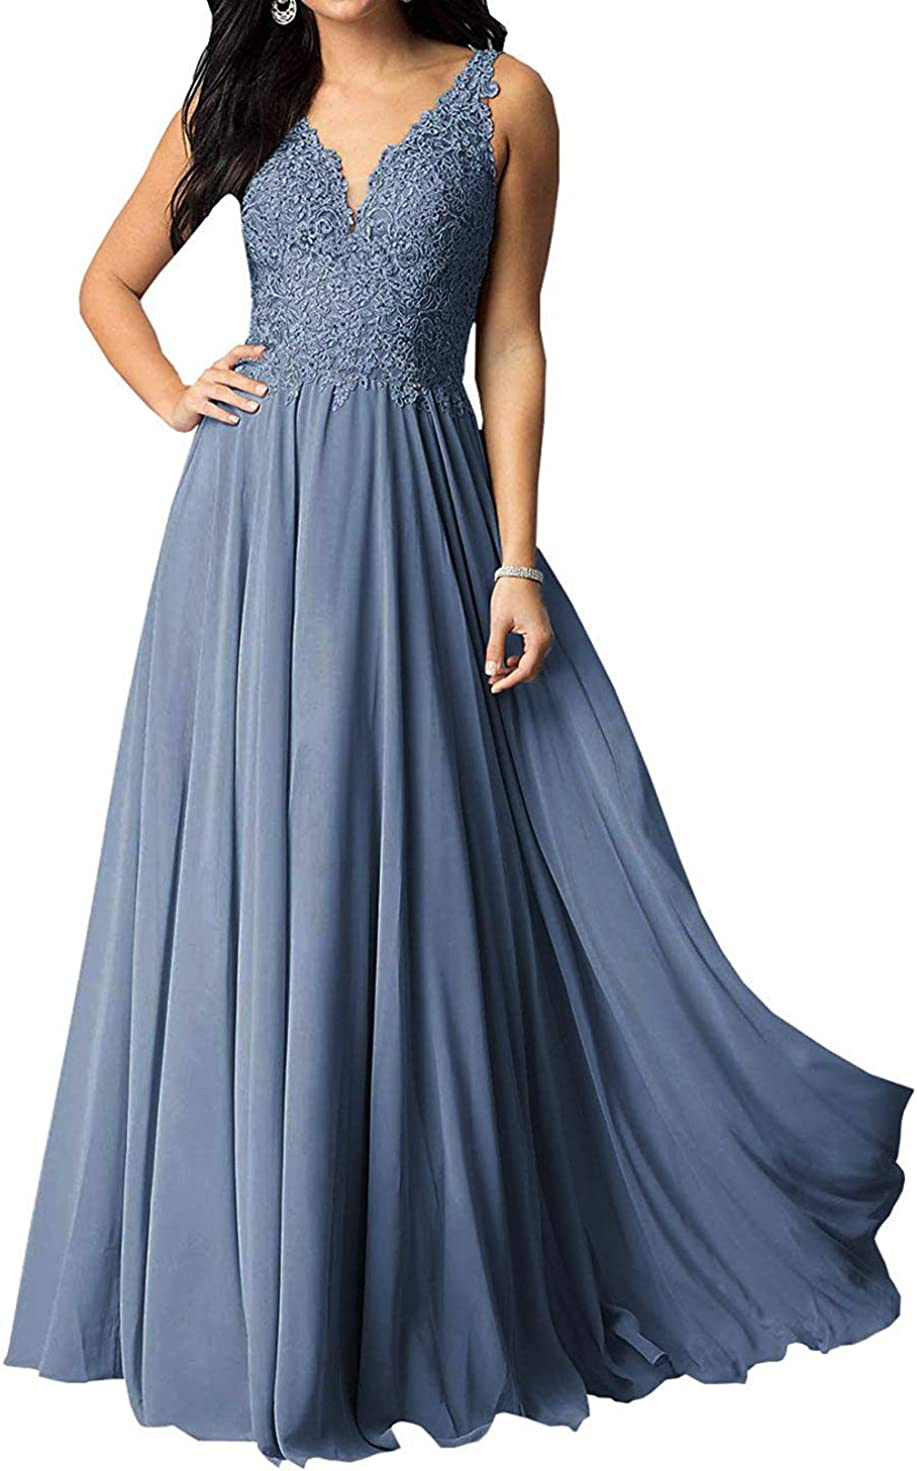 ShipXO Women's V Challenge the lowest price of Japan ☆ Neck online shopping Beaded Prom Dress Evening Lace Wedding Bri